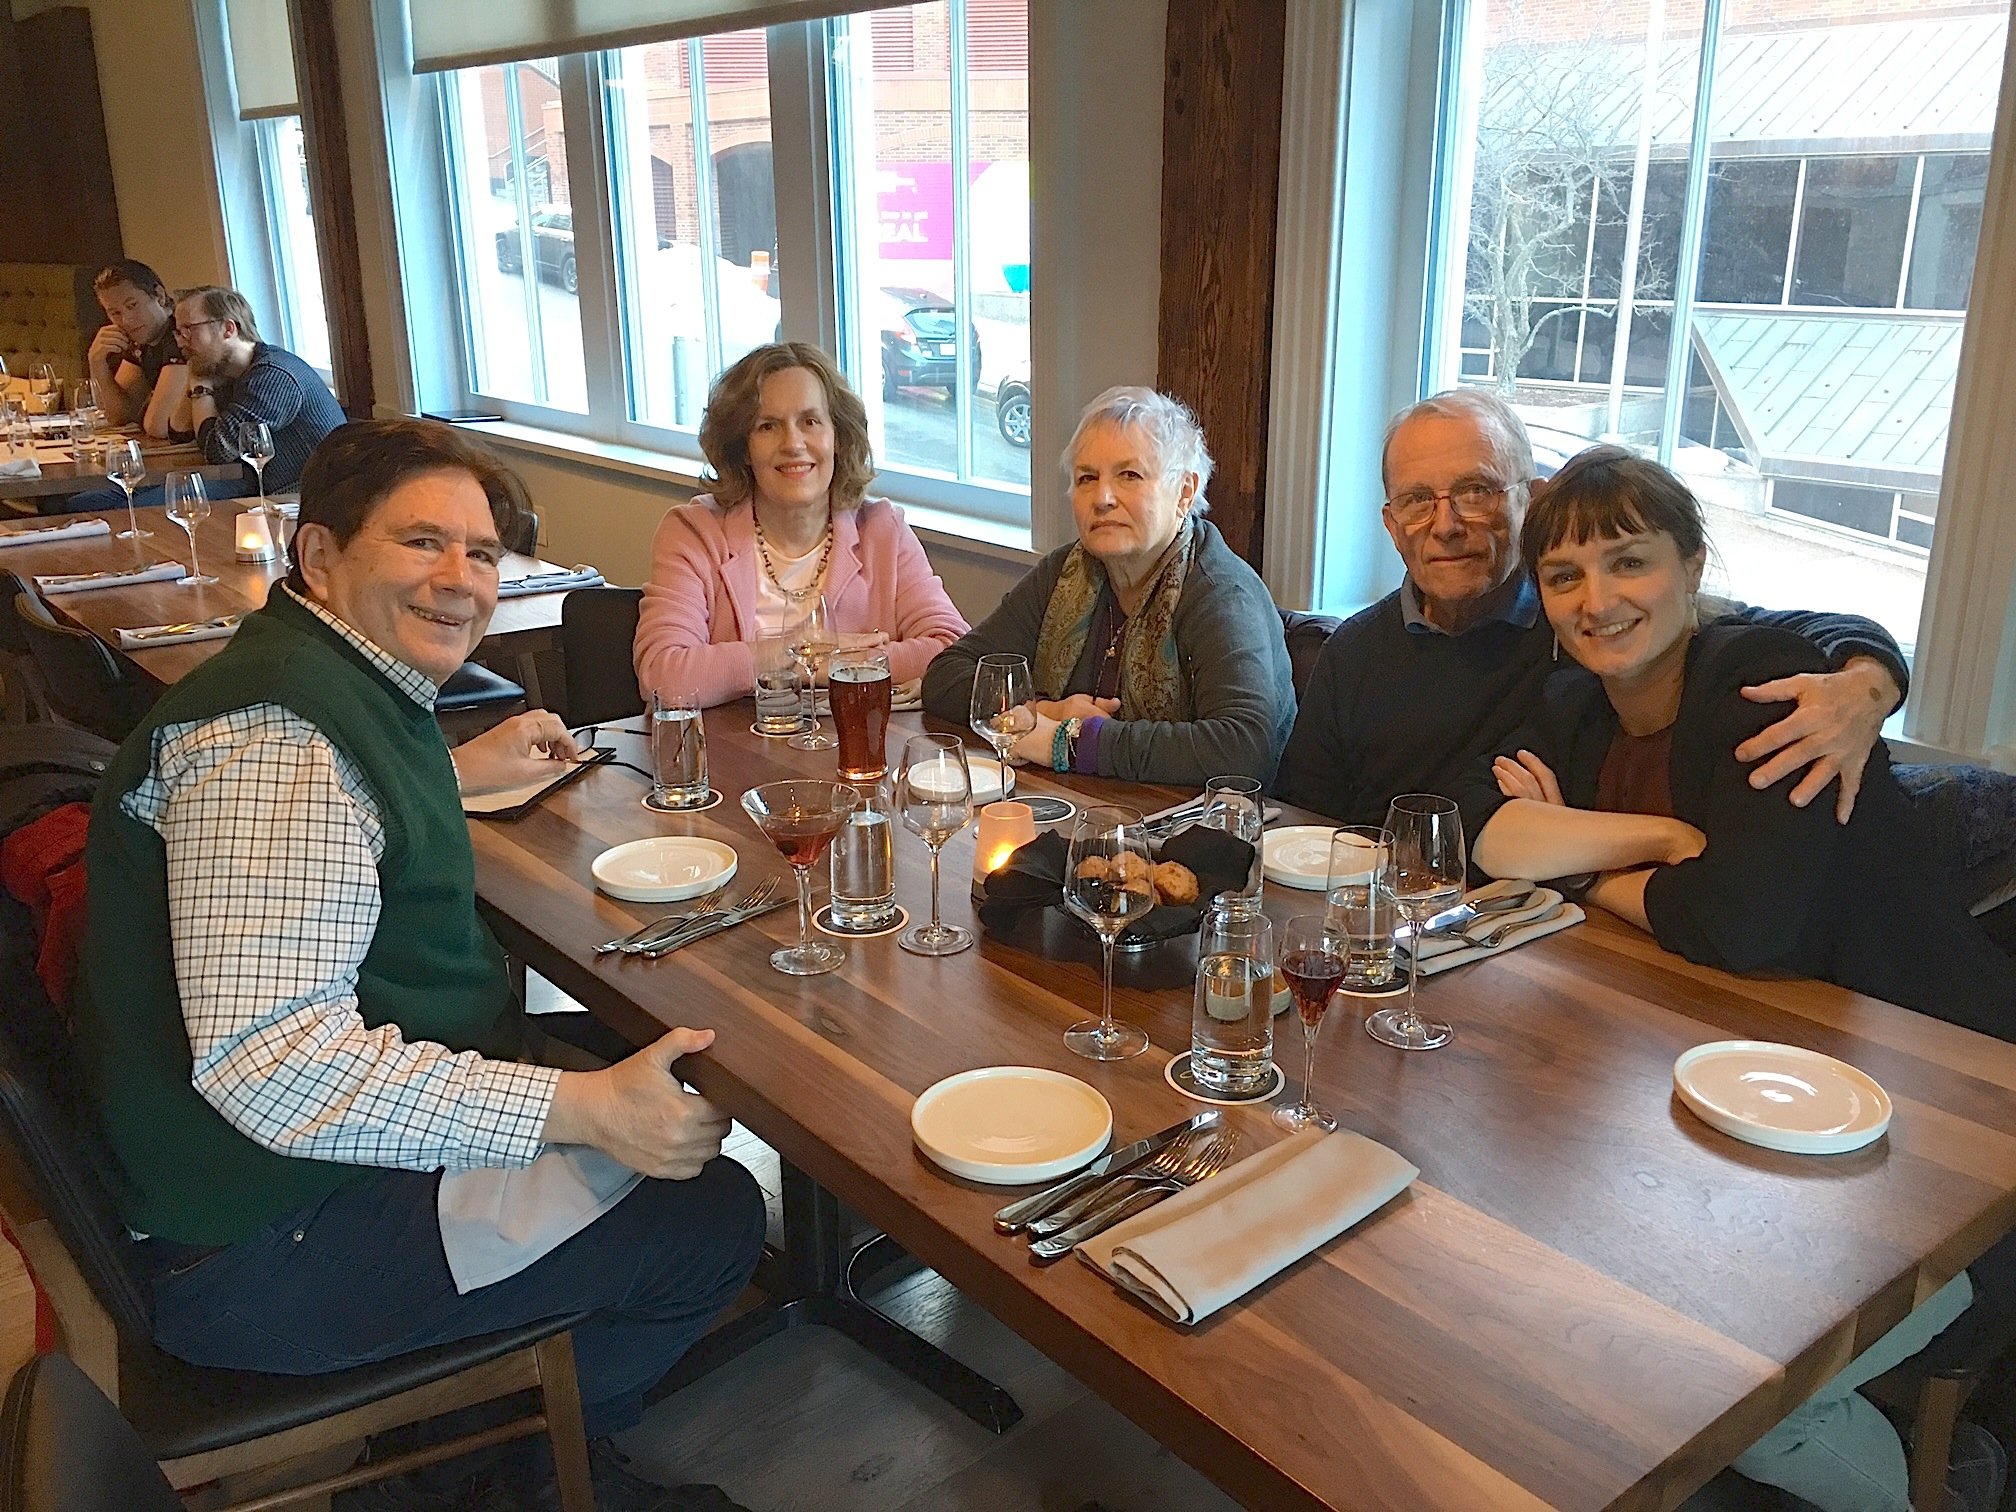 John, Lorraine Gudas, Susan, Barry & Wendy Barner  Halifax, NS March, 2018